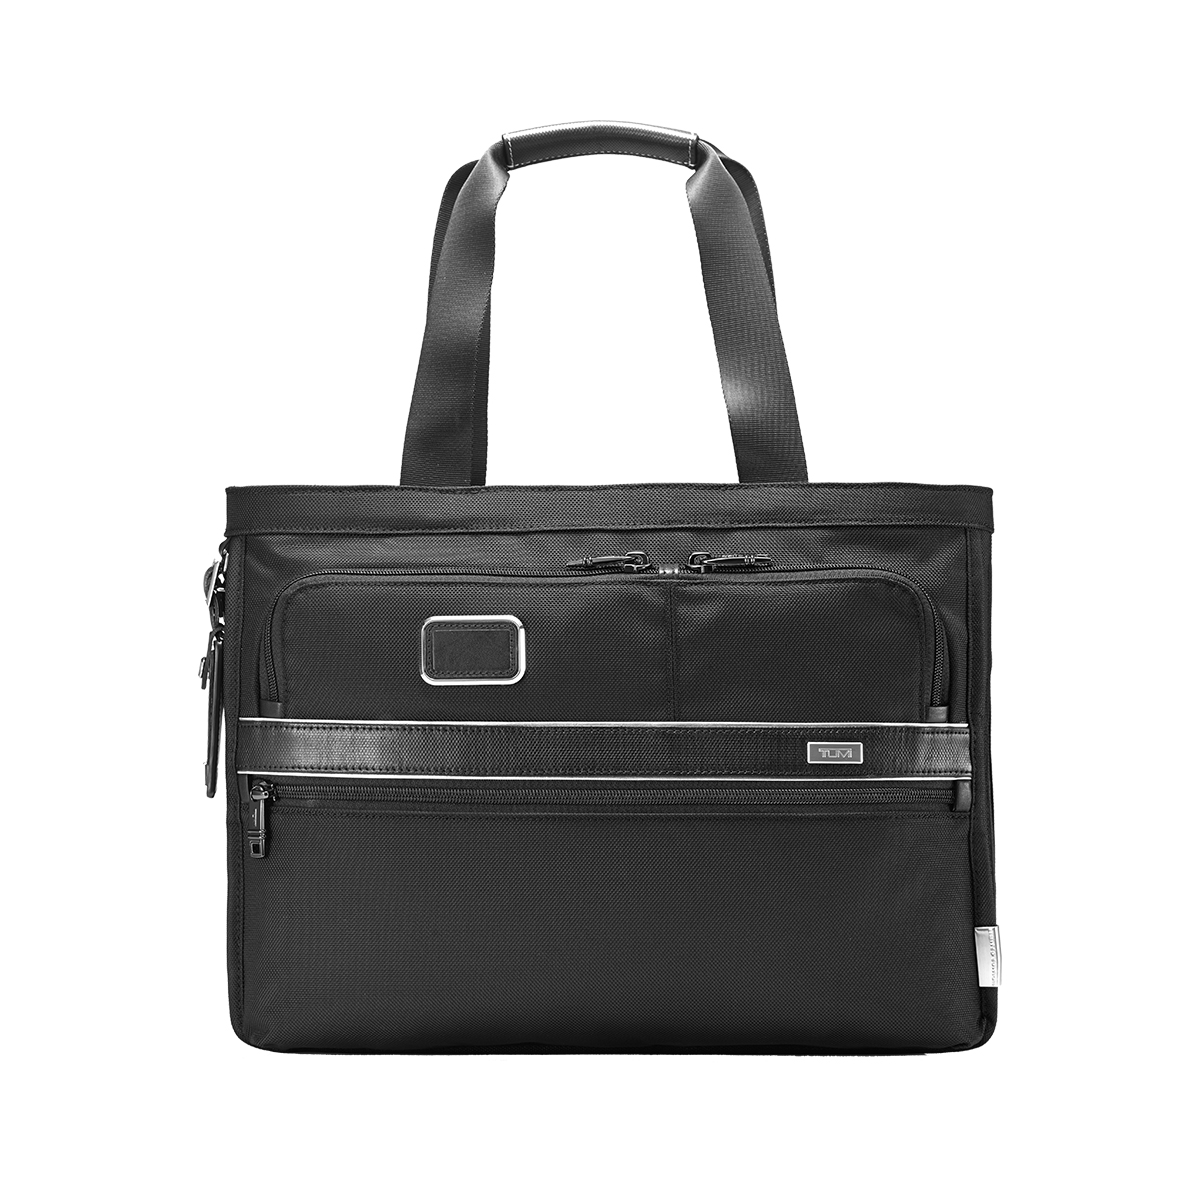 LIMITED EDITION 2015 Expandable Tote  60,000円 + 税